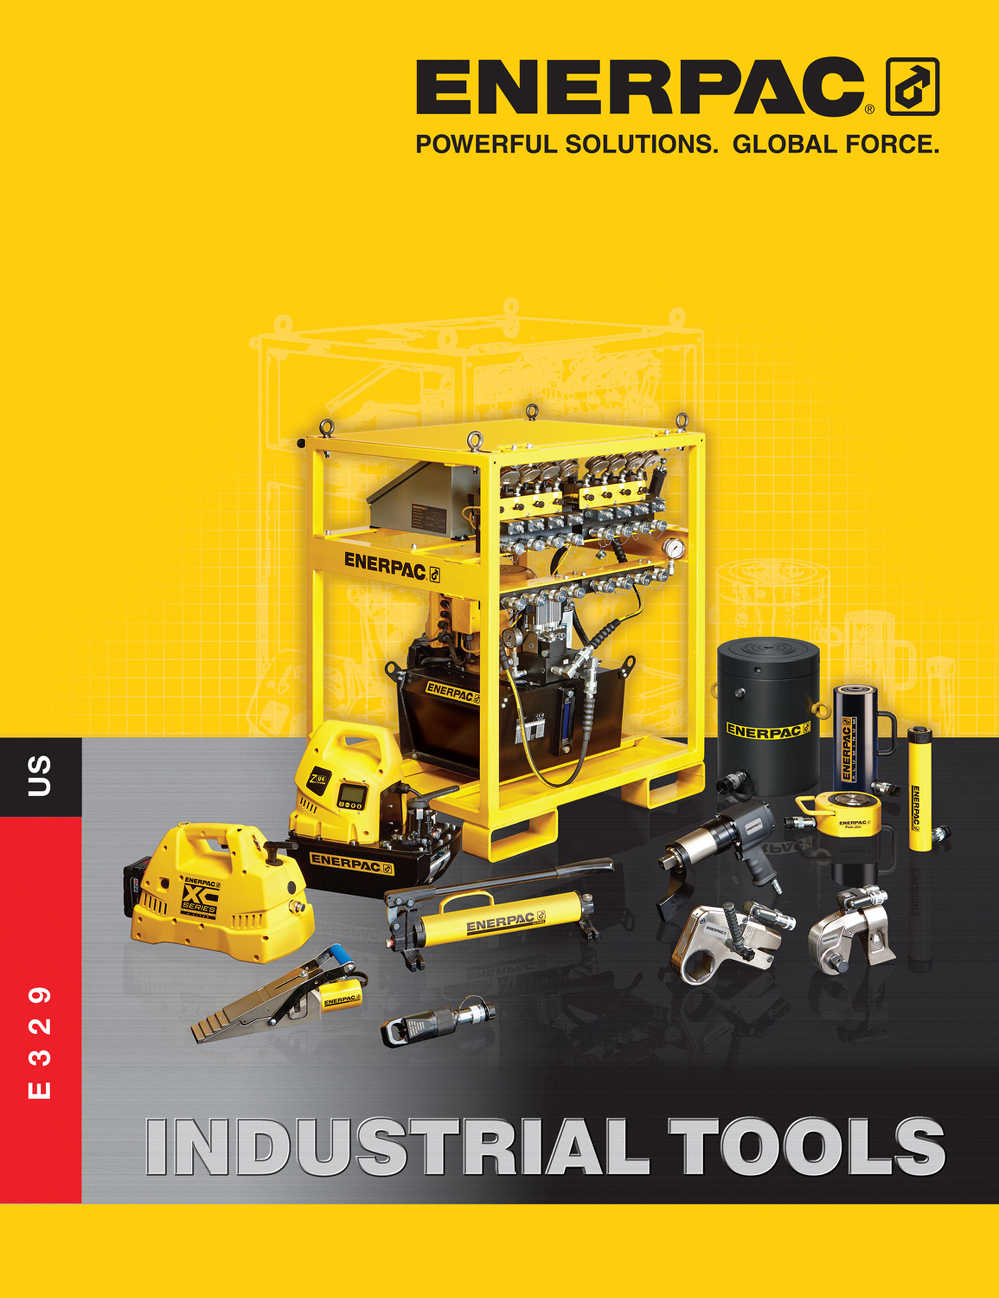 Enerpac's new Industrial Tools Catalog is now available in print and online for download.